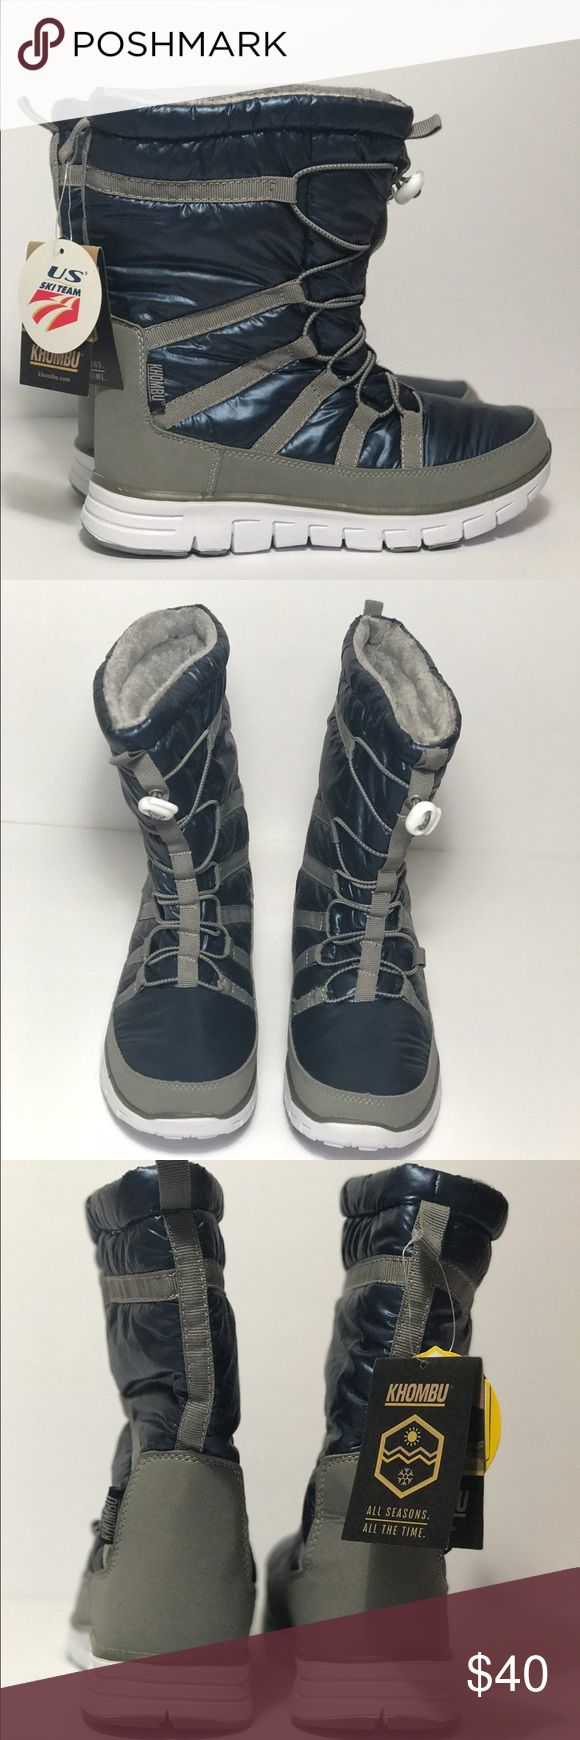 KHOMBU (Boots) Women's 8 NWT Original: $63.30 KHOMBU (Boots) Size: Women's 8 NWT Original: $63.30 Lightweight durable, easy to use with gloves. The brand the US Ski team uses available to you!  Make me an offer😀 Khombu Shoes Winter & Rain Boots